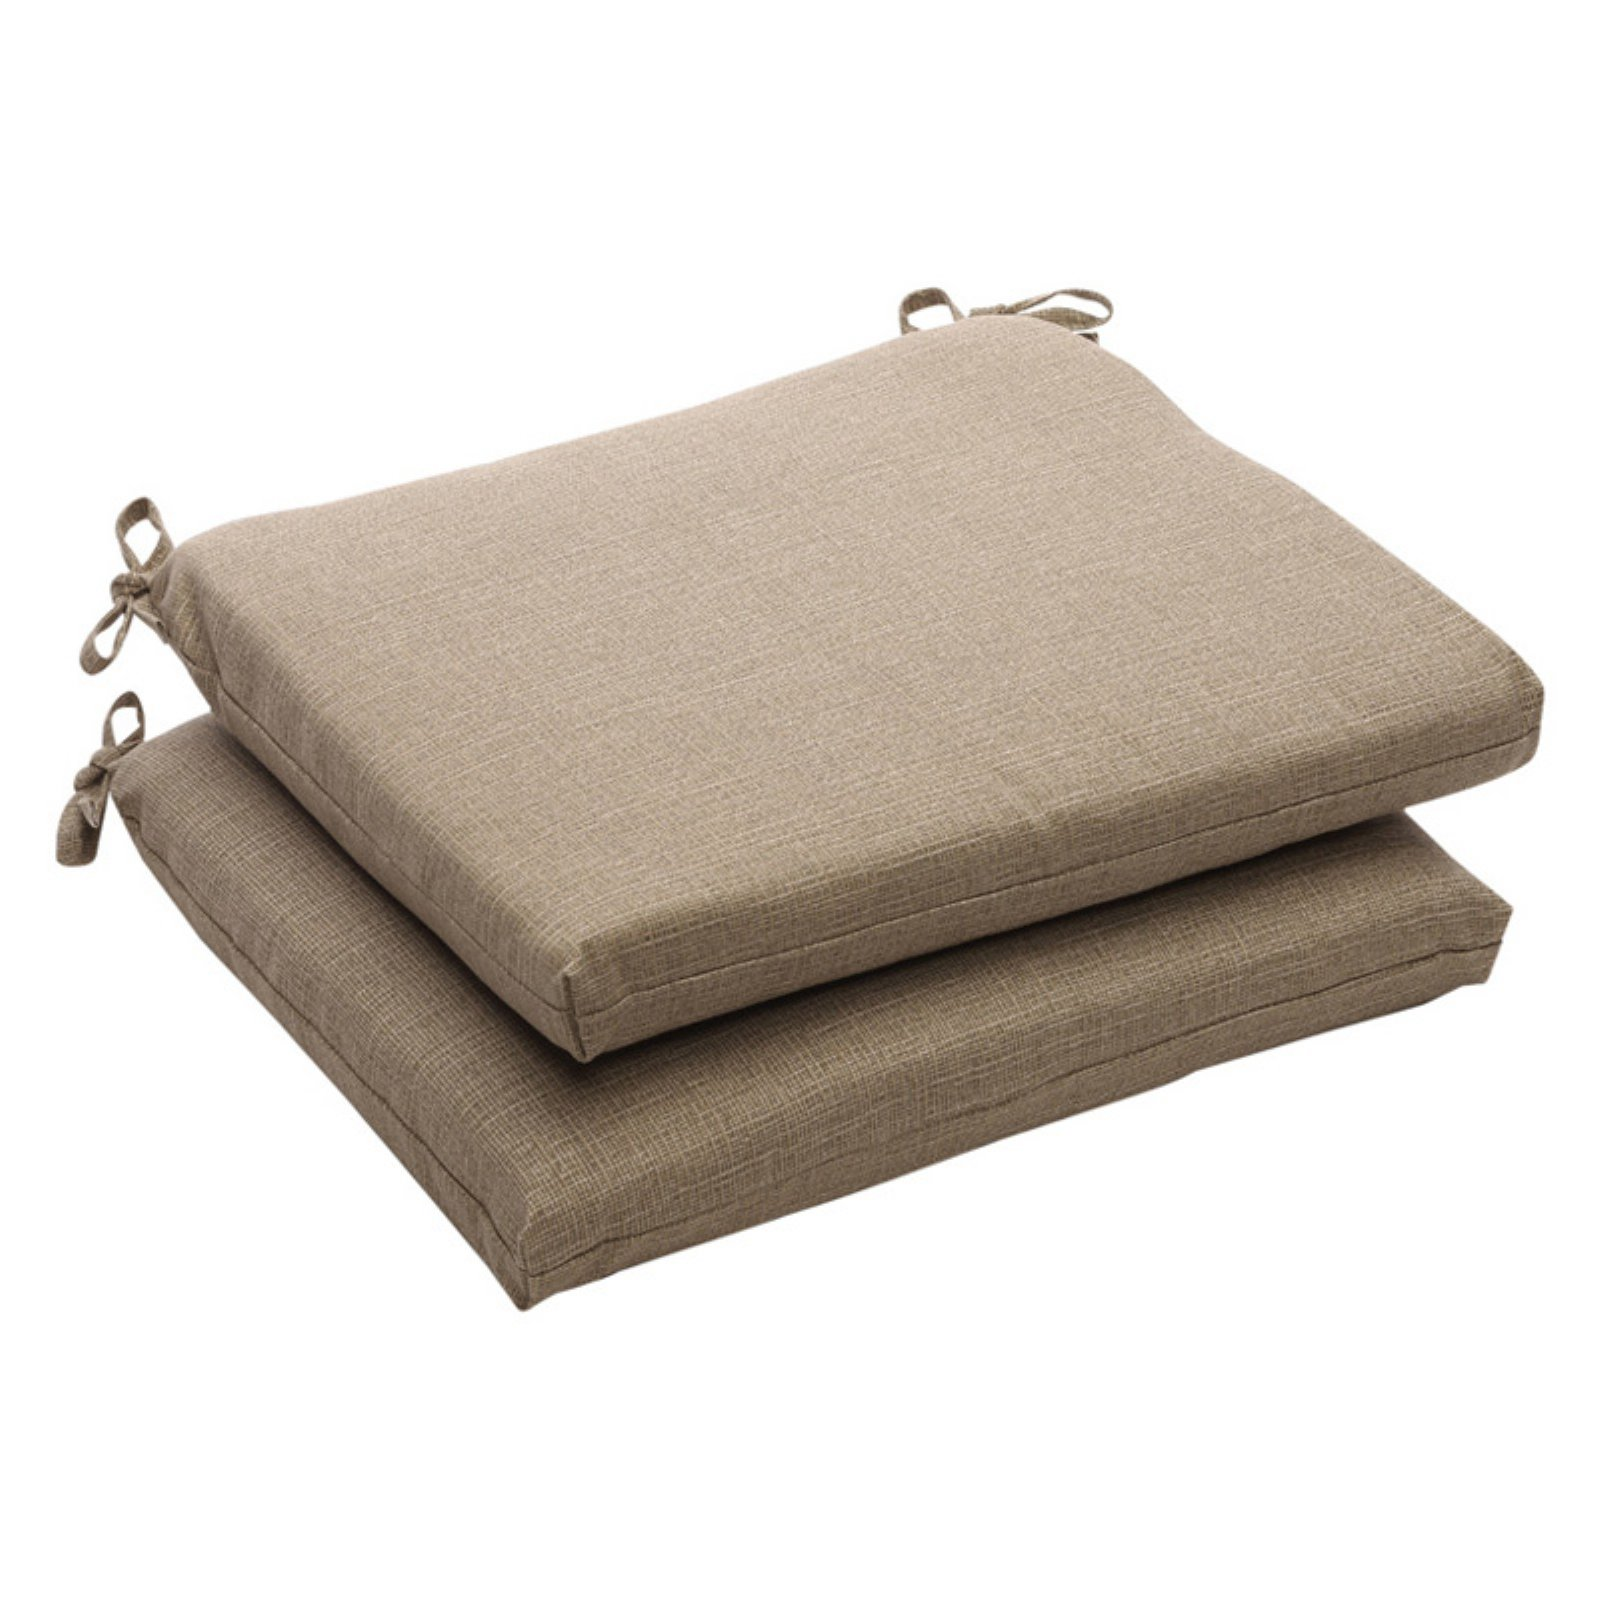 Pillow Perfect Outdoor Textured Solid Seat Cushion - 18.5...